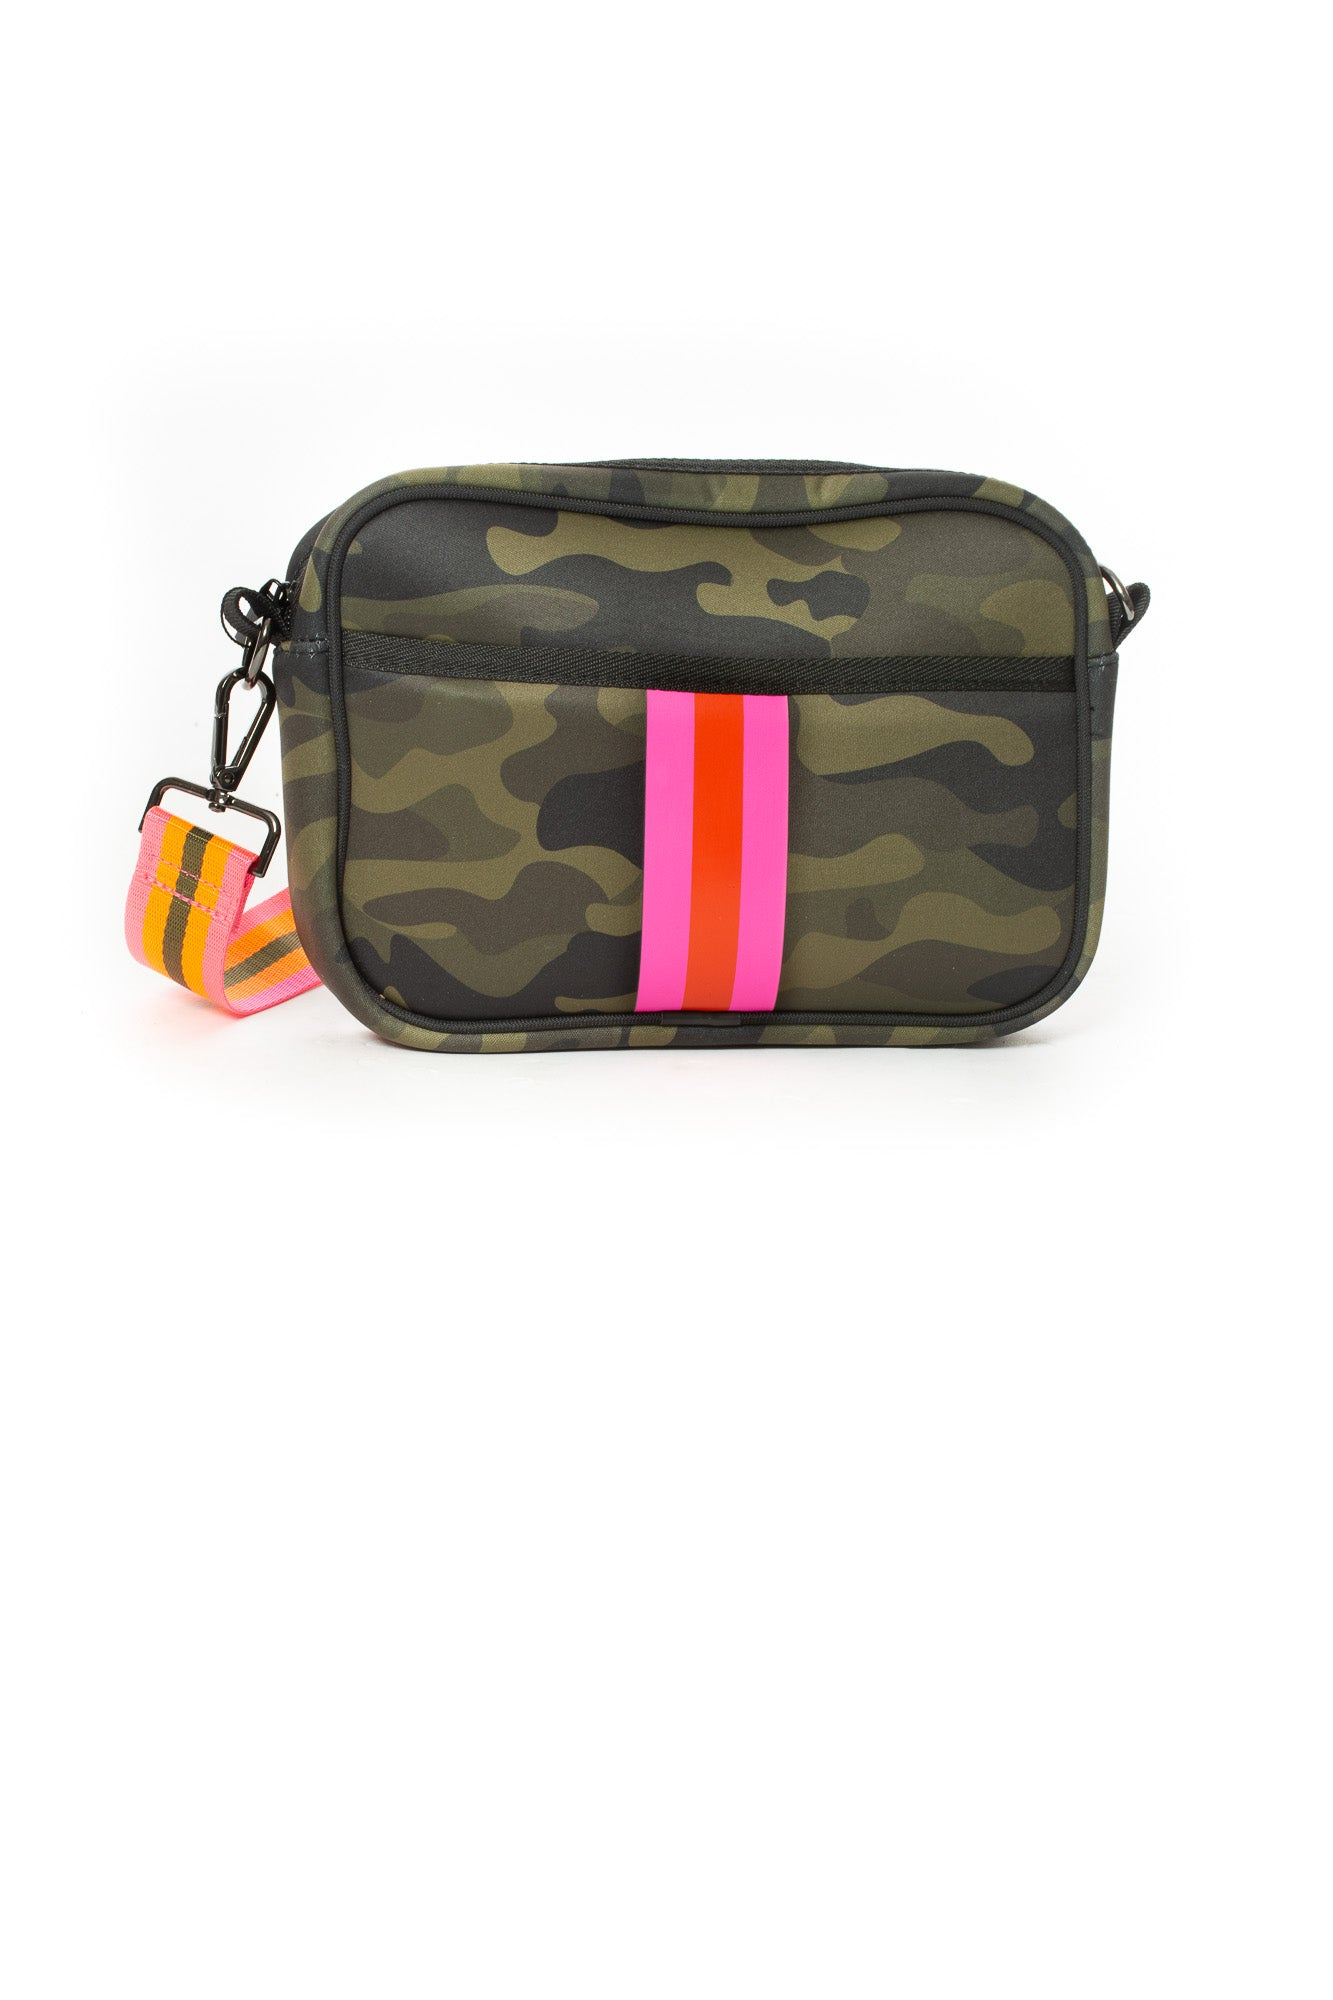 Haute Shore - Drew Showoff Crossbody (Drew, Green Camo w/Orange & Pink Stripe)